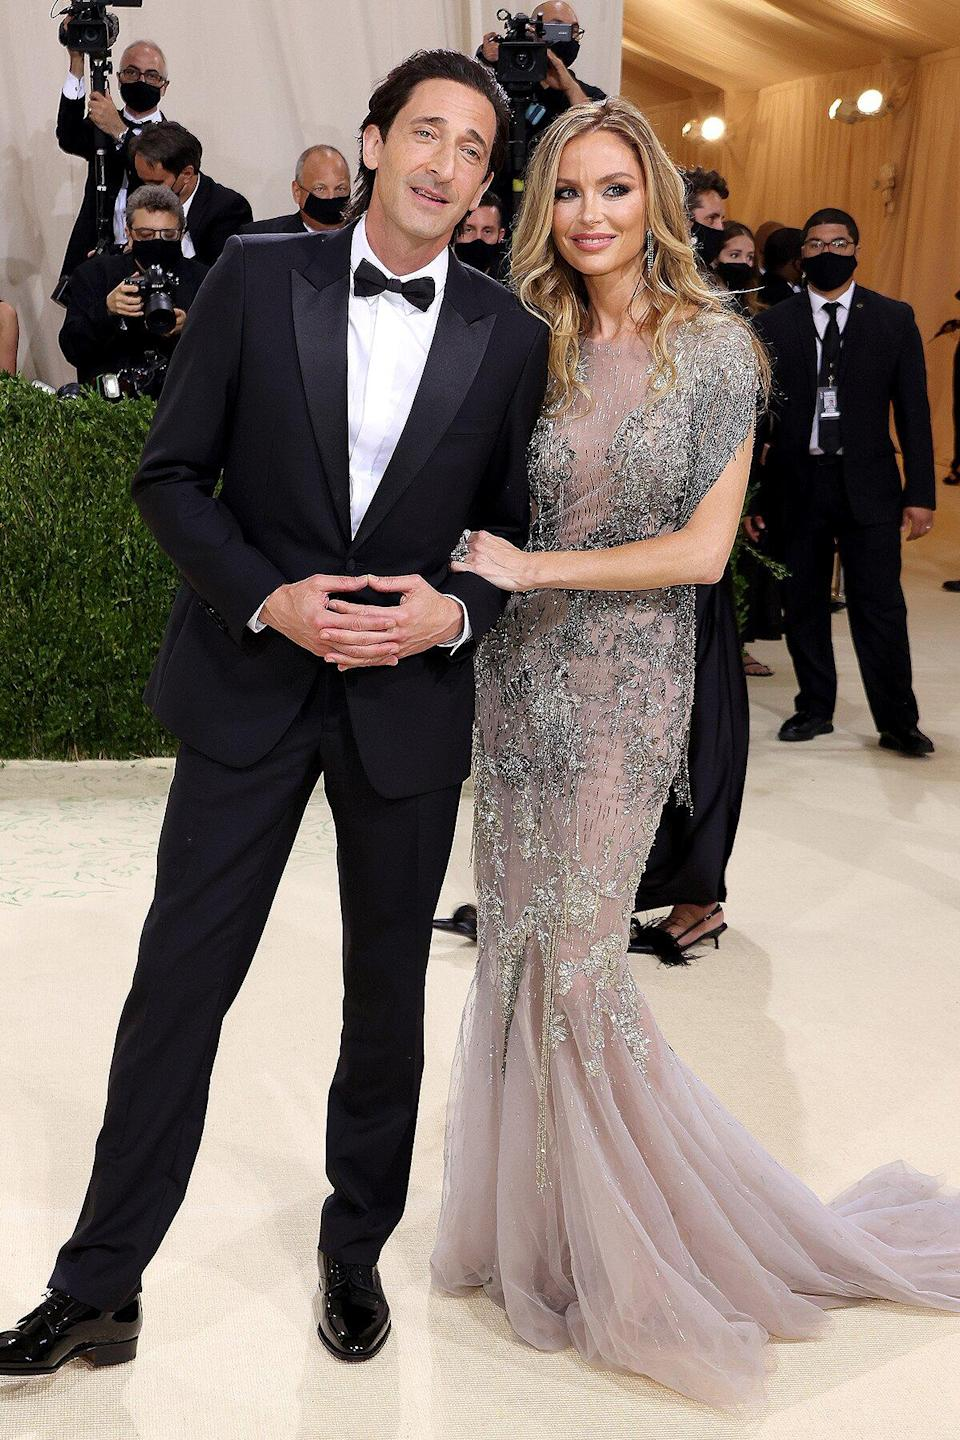 Adrien Brody and Georgina Chapman attend The 2021 Met Gala Celebrating In America: A Lexicon Of Fashion at Metropolitan Museum of Art on September 13, 2021 in New York City.